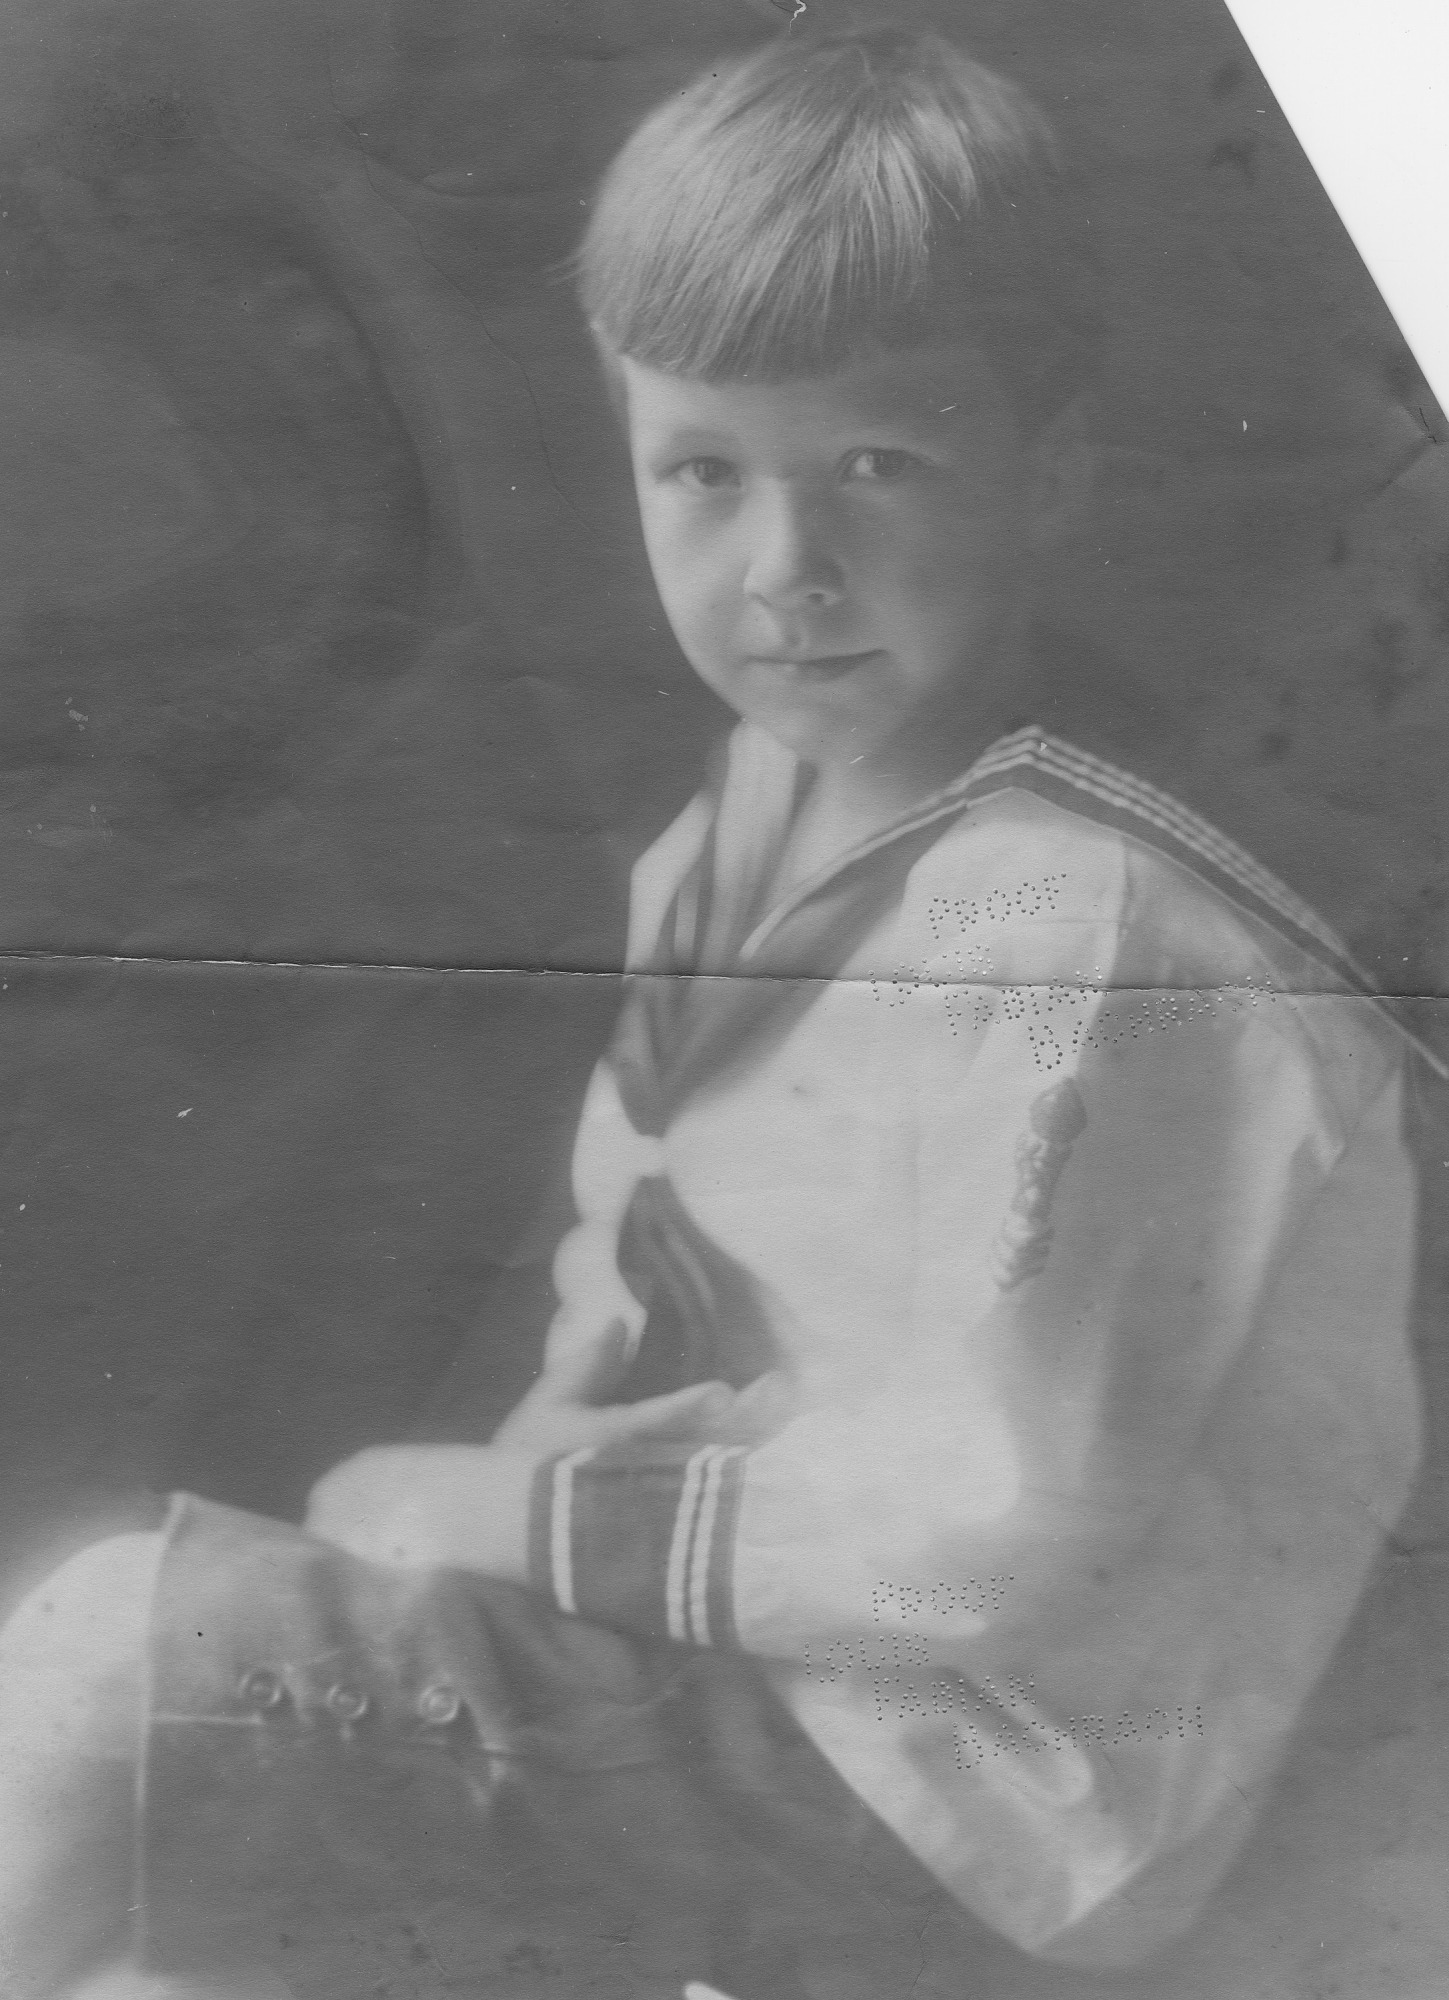 S. Dillon Ripley in Sailor Suit